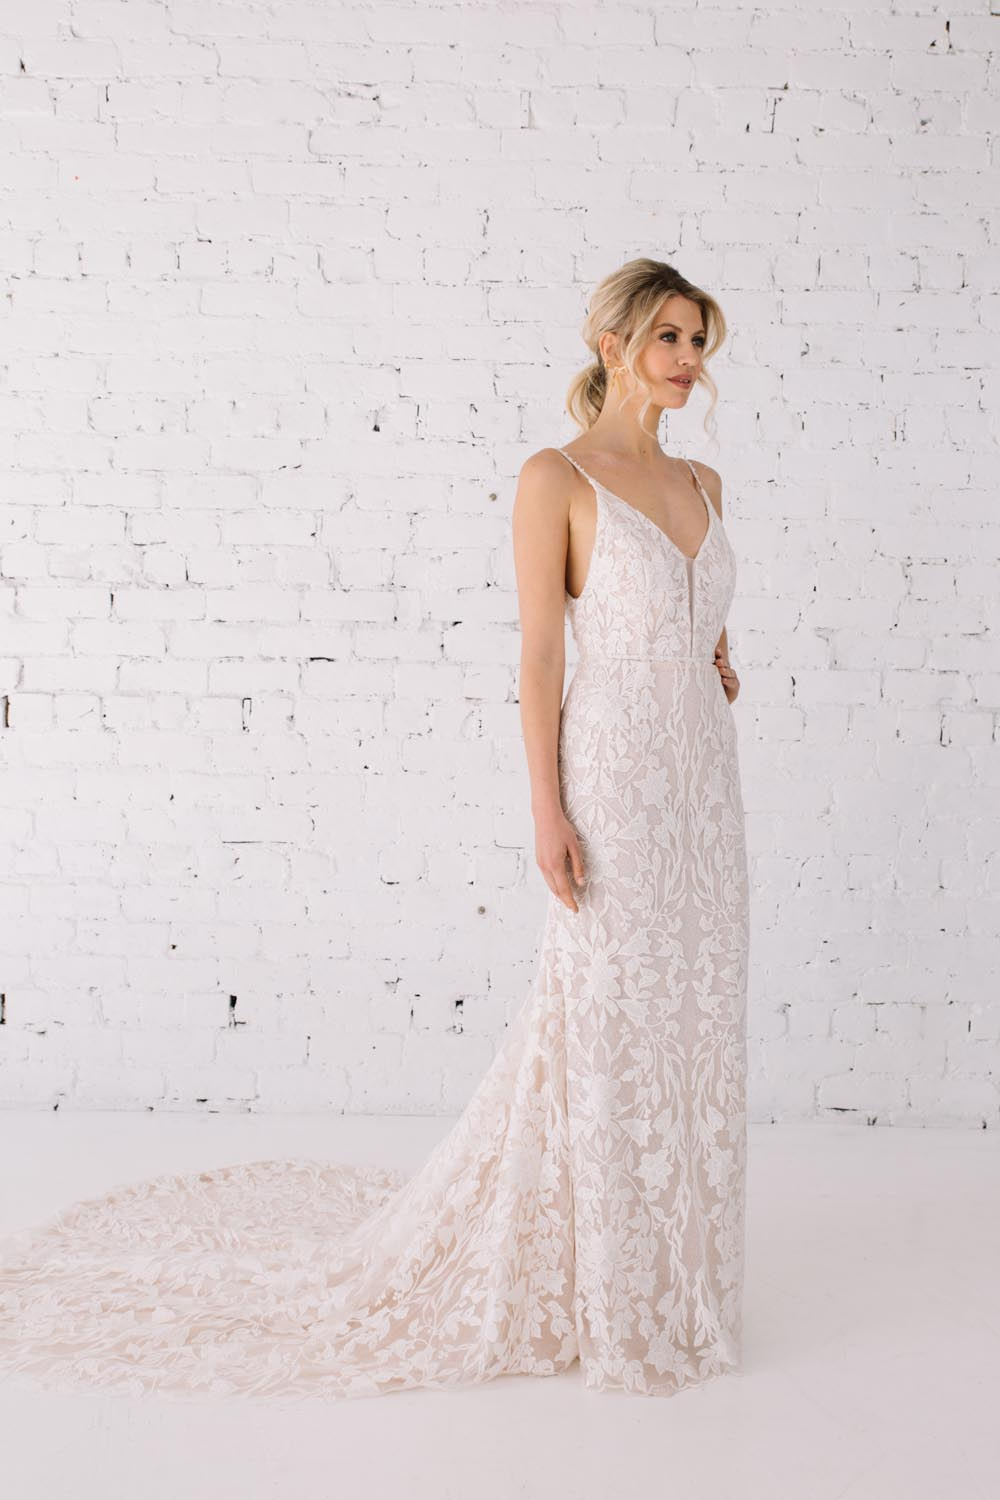 Trish Peng Wedding Dress at Novia Brides